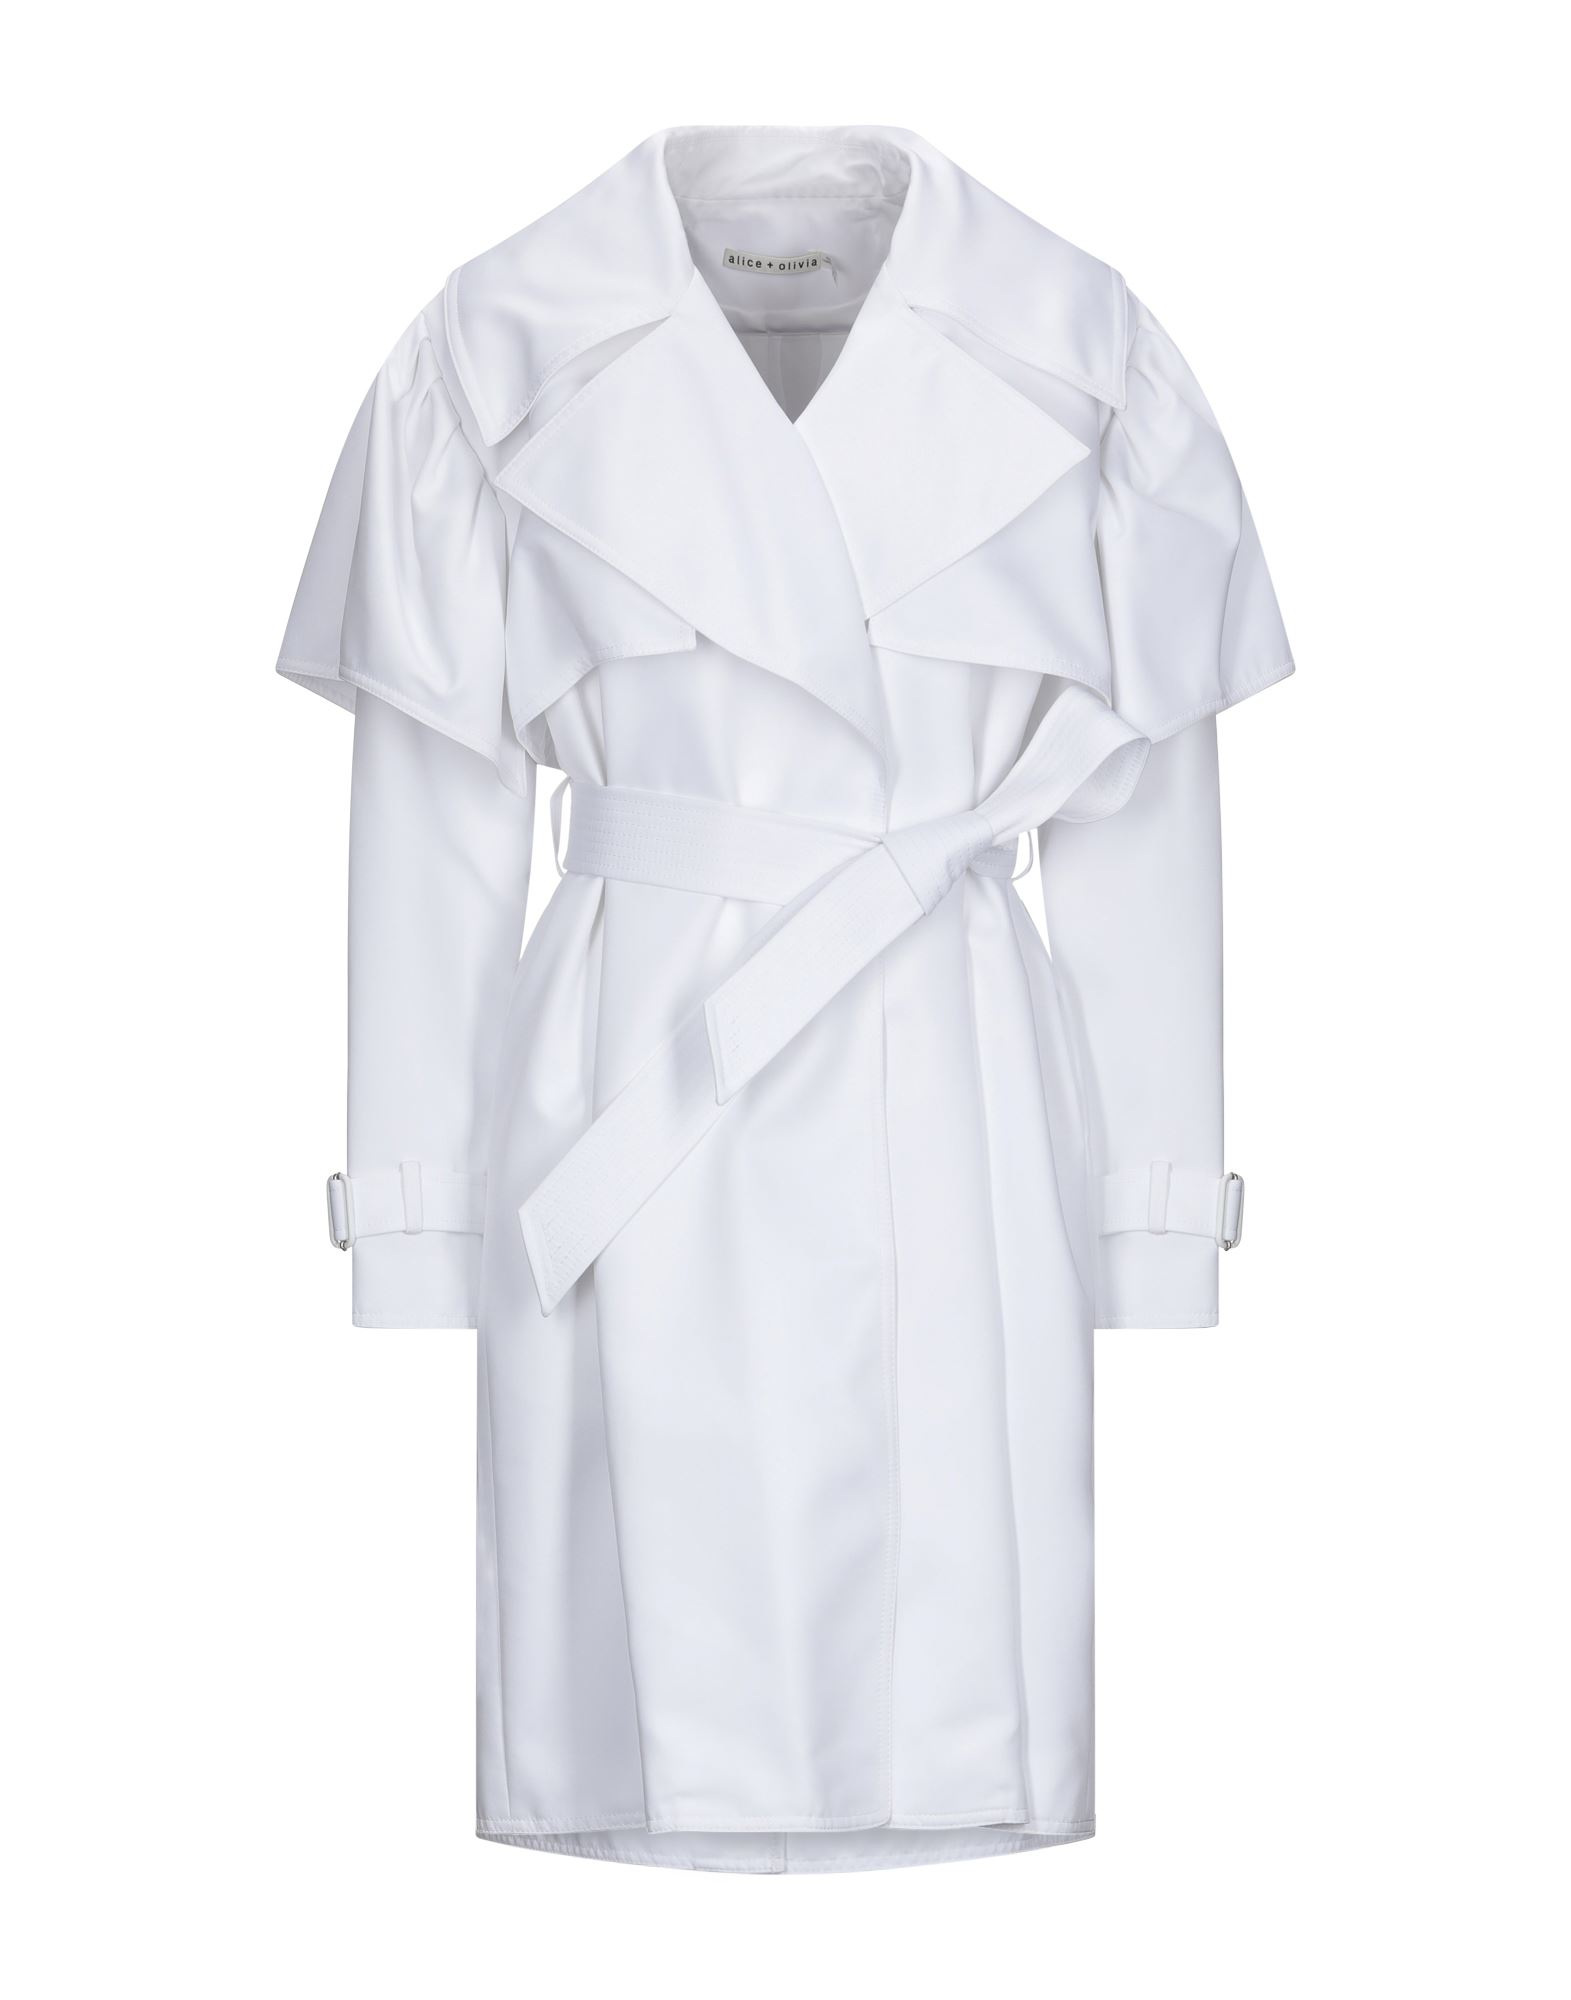 ALICE + OLIVIA Overcoats. crepe, belt, basic solid color, single-breasted, self-tie wrap closure, lapel collar, multipockets, long sleeves, strapped cuffs, rear slit, fully lined, large sized. 100% Polyester